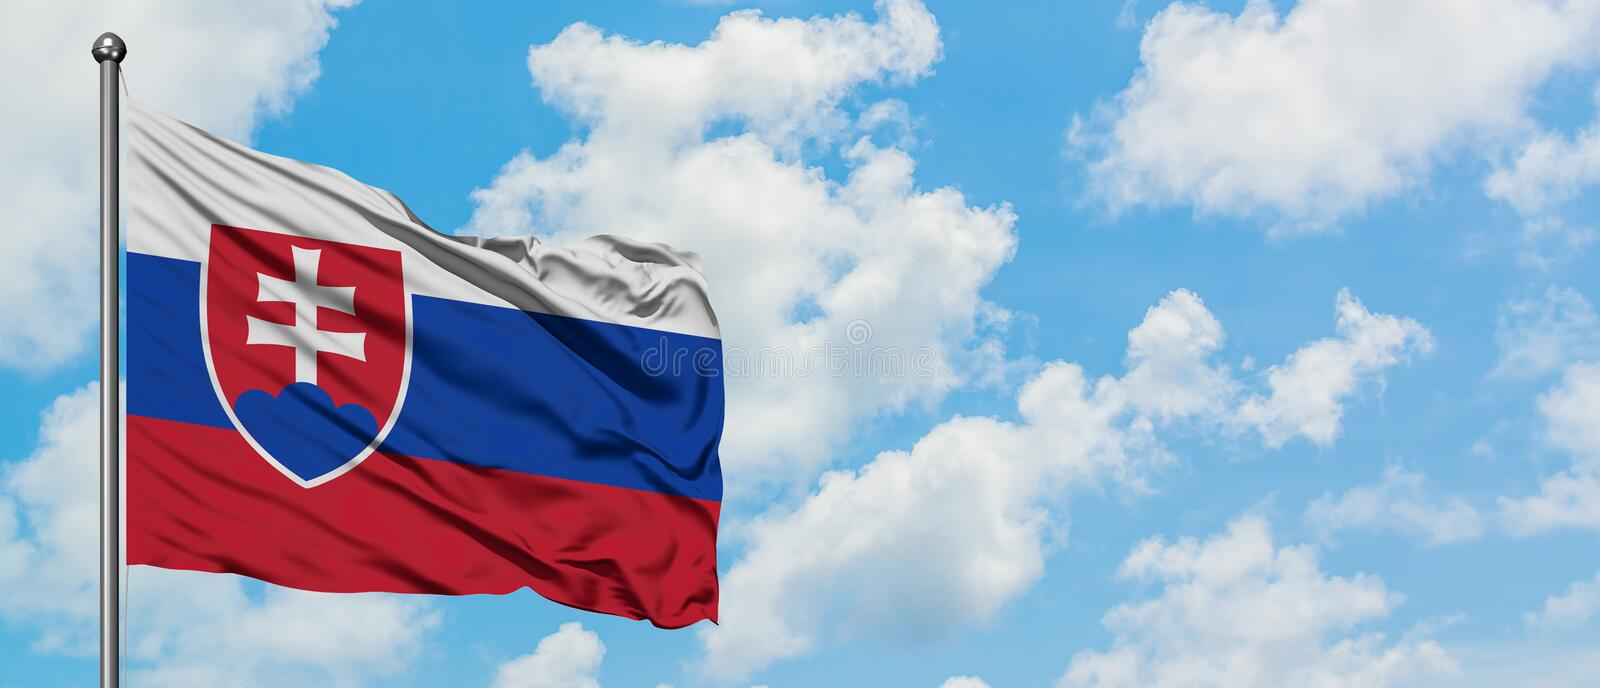 Slovakia flag waving in the wind against white cloudy blue sky. Diplomacy concept, international relations.  royalty free stock photography